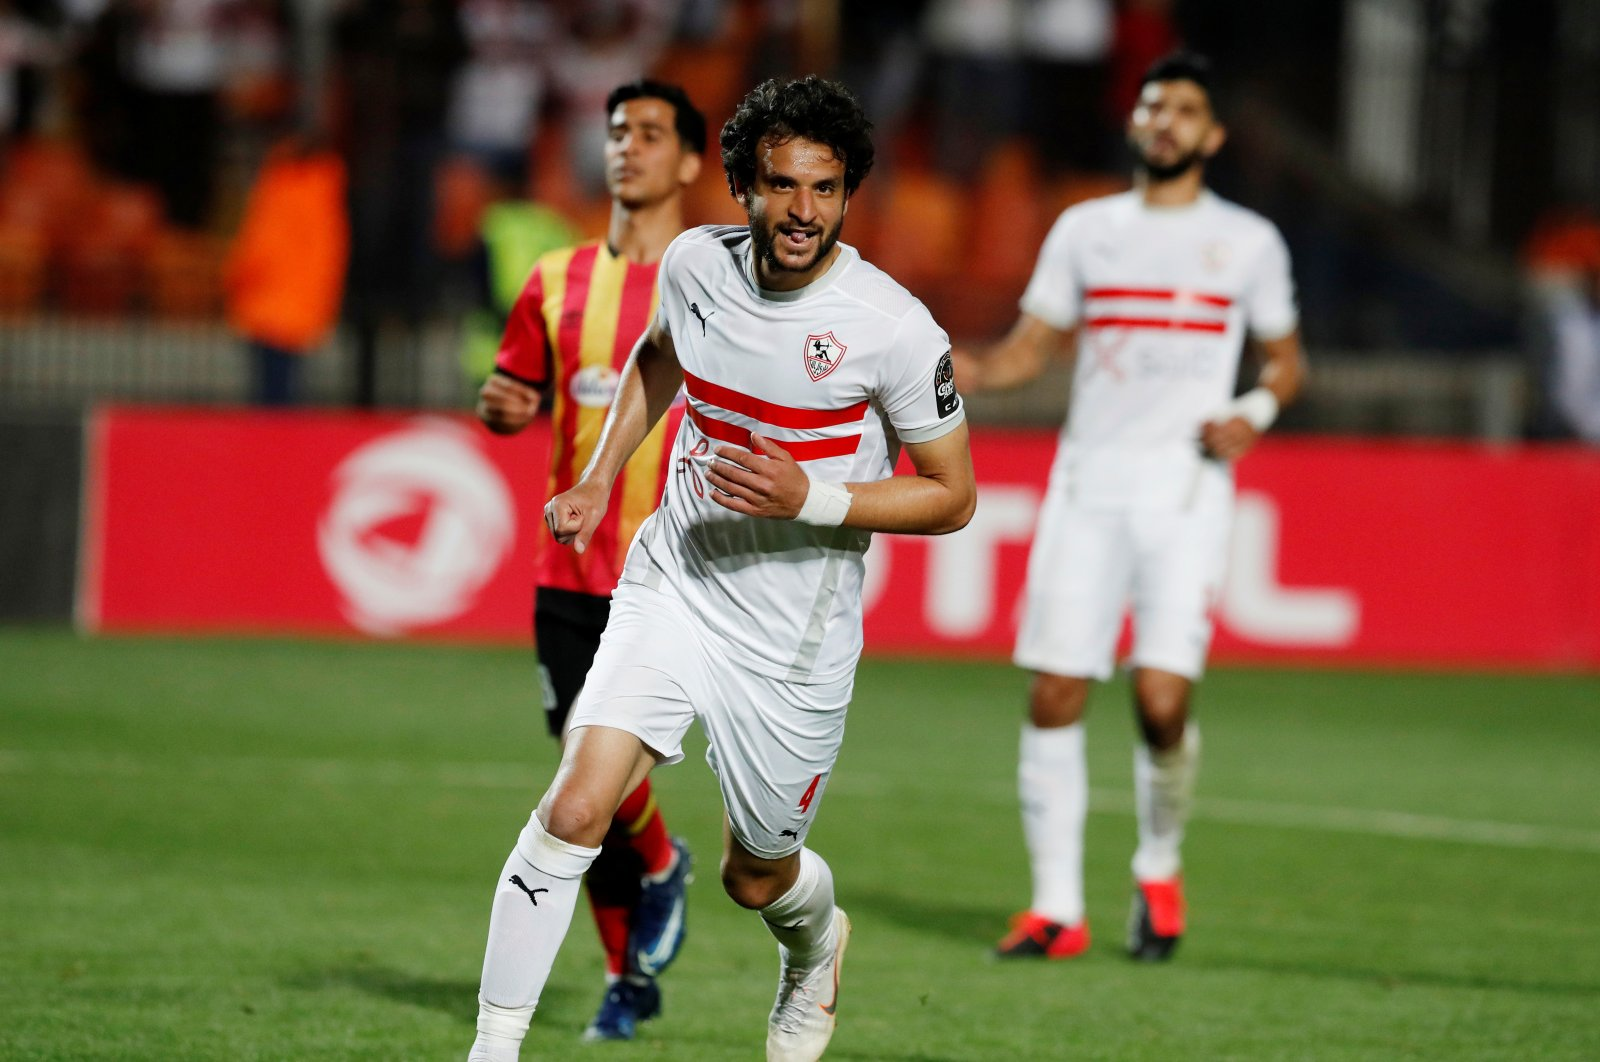 Zamalek's Mahmoud Alaa celebrates a goal in the quarter final against Esperance Sportive, Cairo, Feb. 28, 2020. (REUTERS Photo)